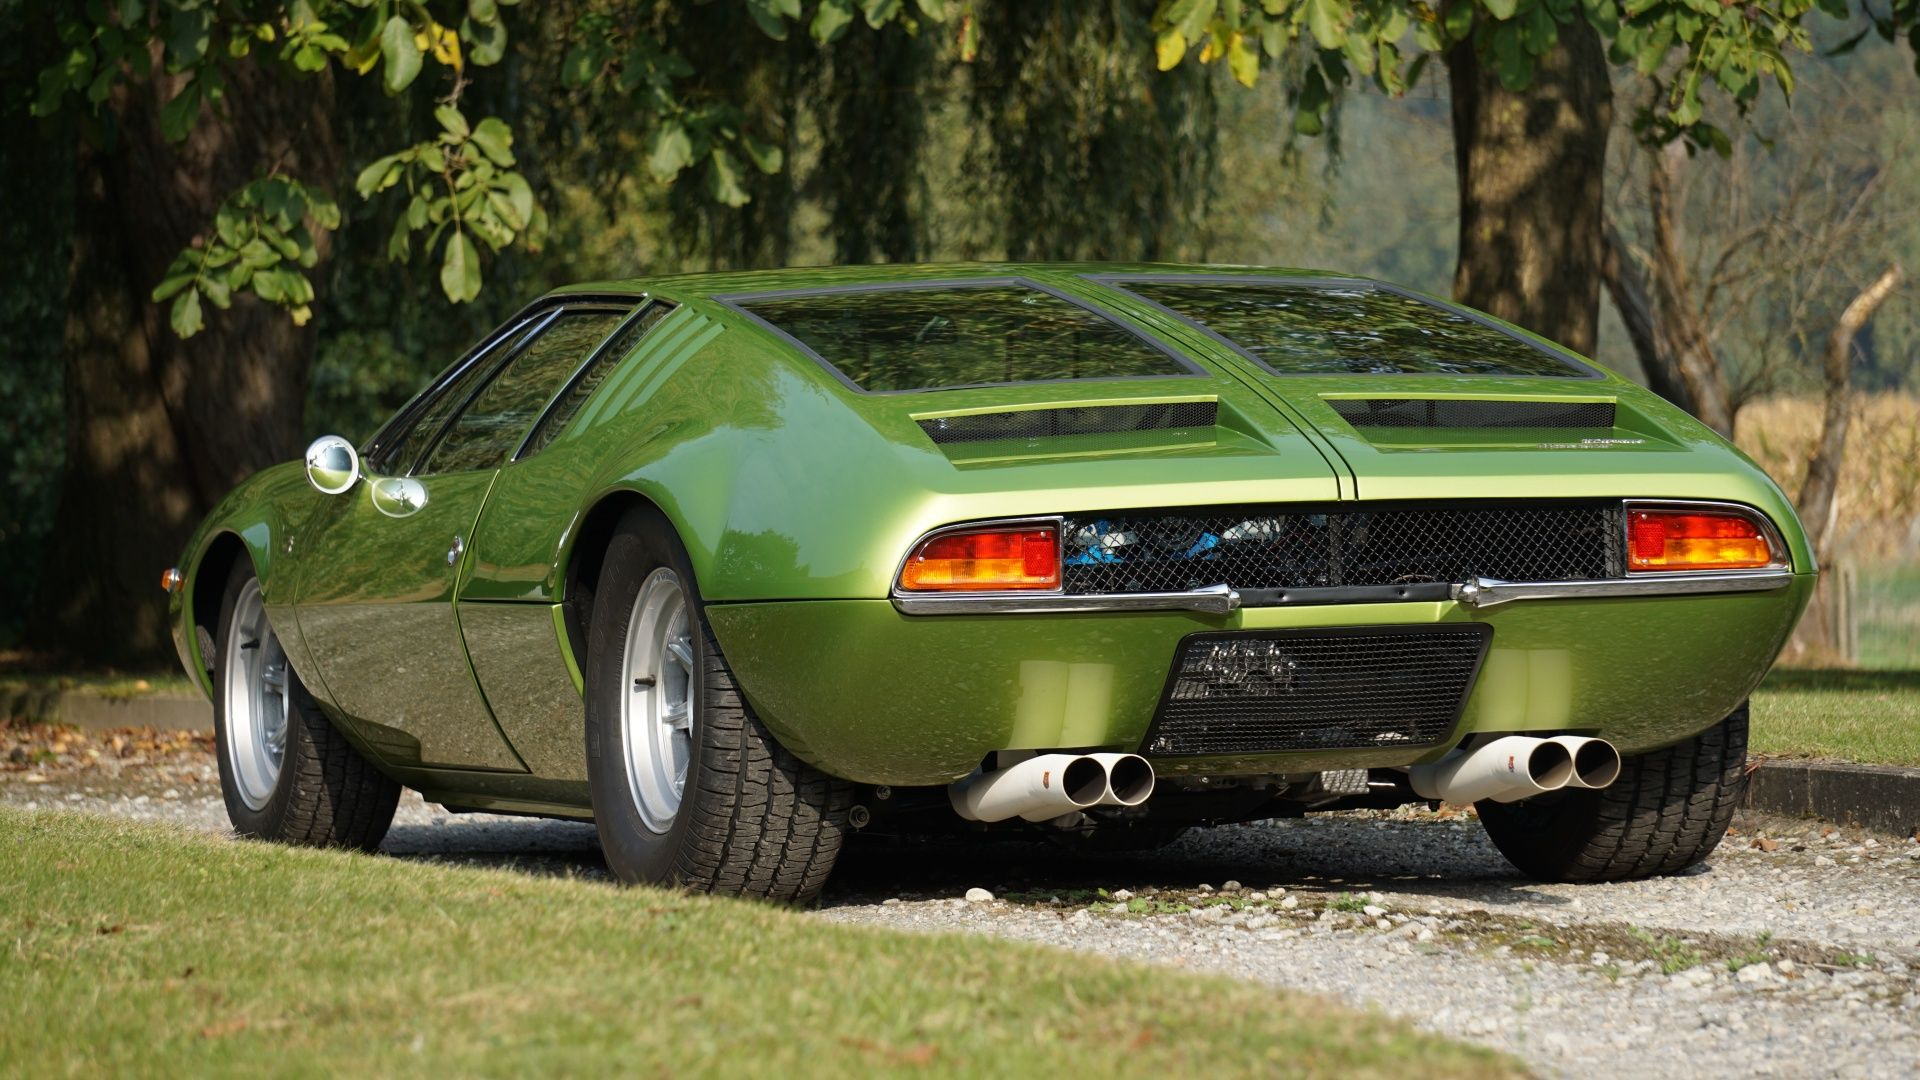 De Tomaso Mangusta Classic Driver Market EVERYTHING COOL - Cool looking cars for sale